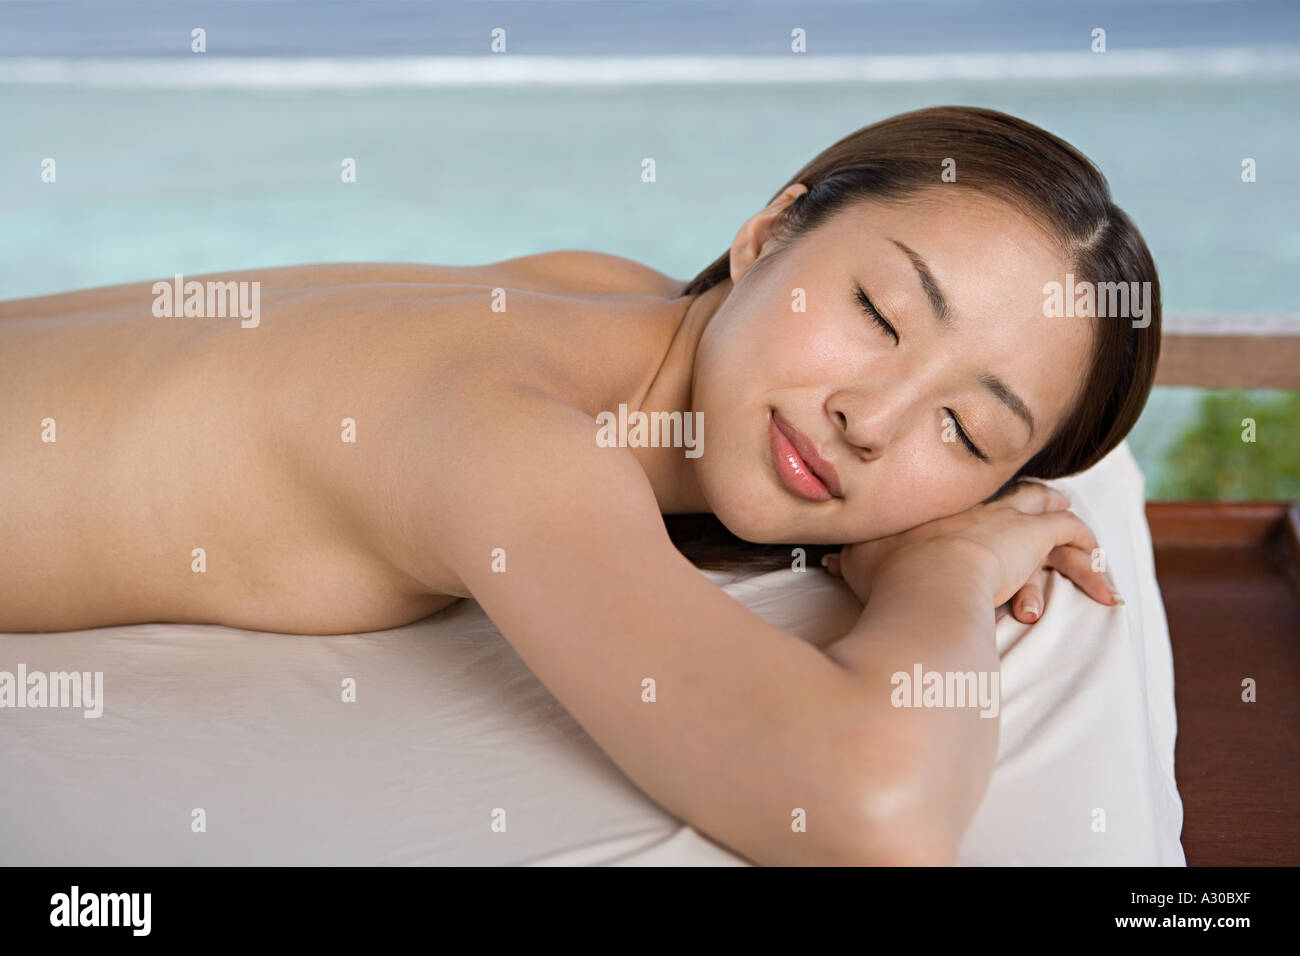 woman-undressed-swimming-extremely-long-labia